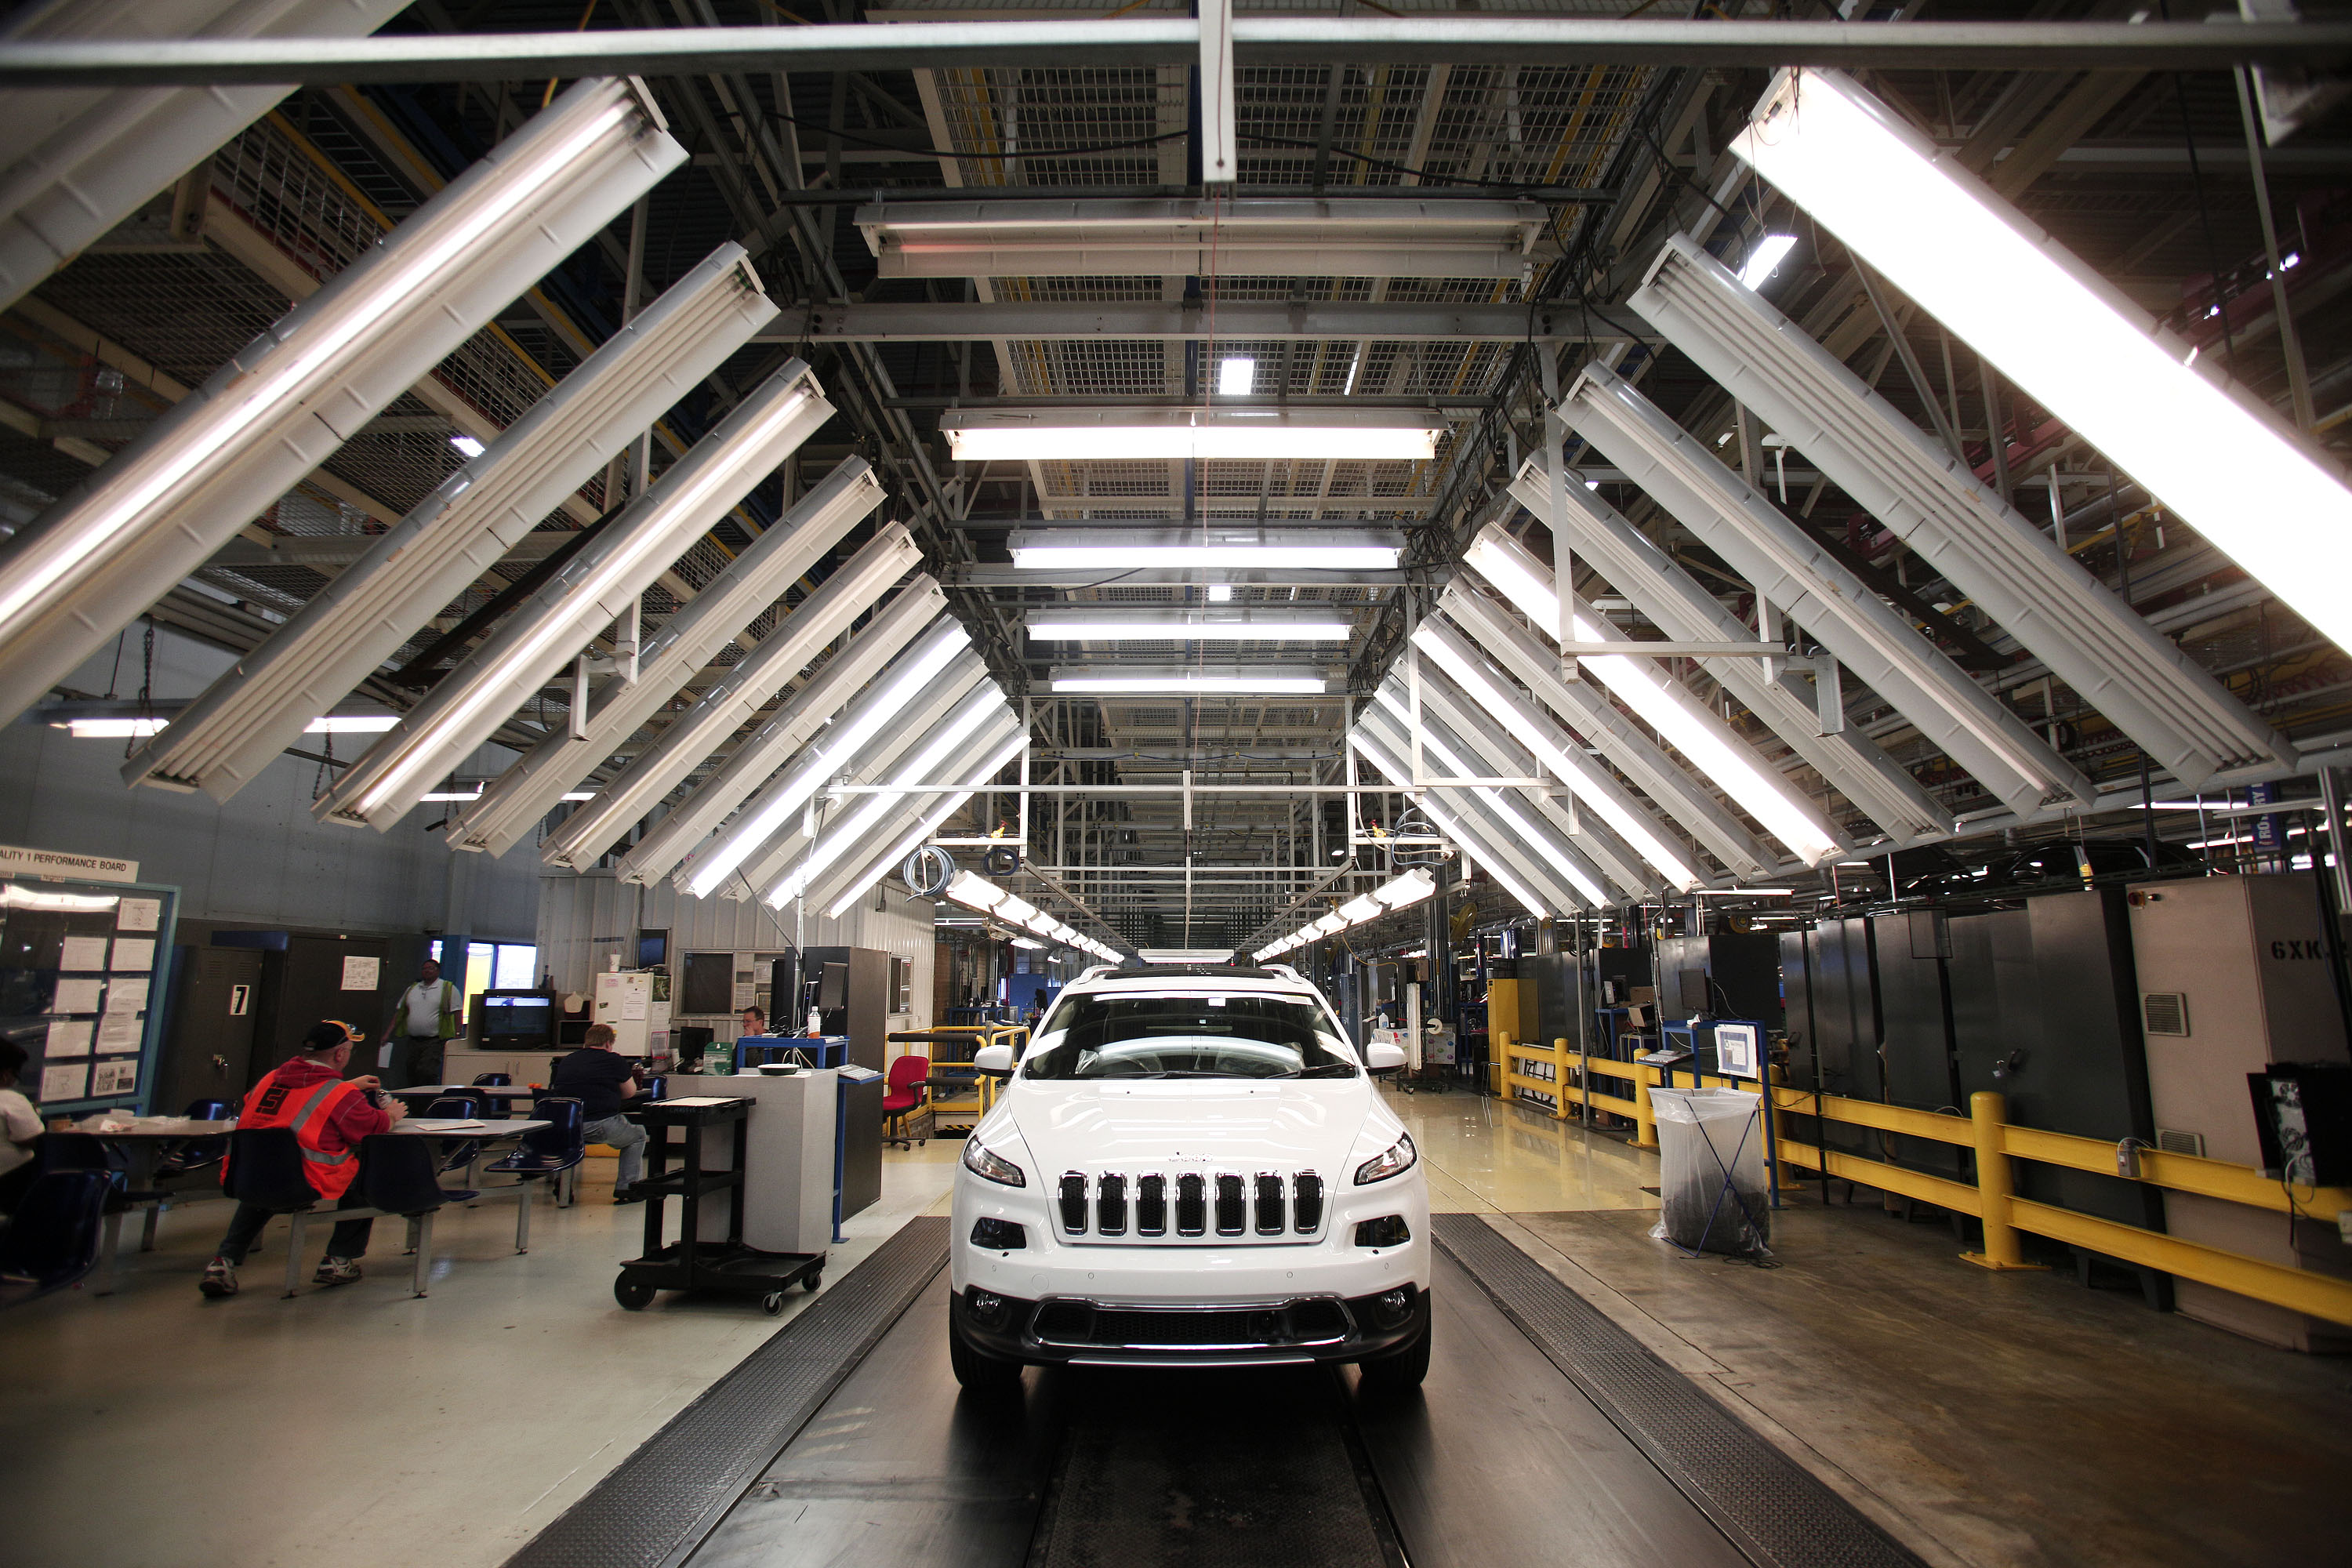 The 2014 Jeep Cherokee undergoes assembly at the Chrysler Toledo North Assembly Plant Jeep May 7, 2014 in Toledo, Ohio.